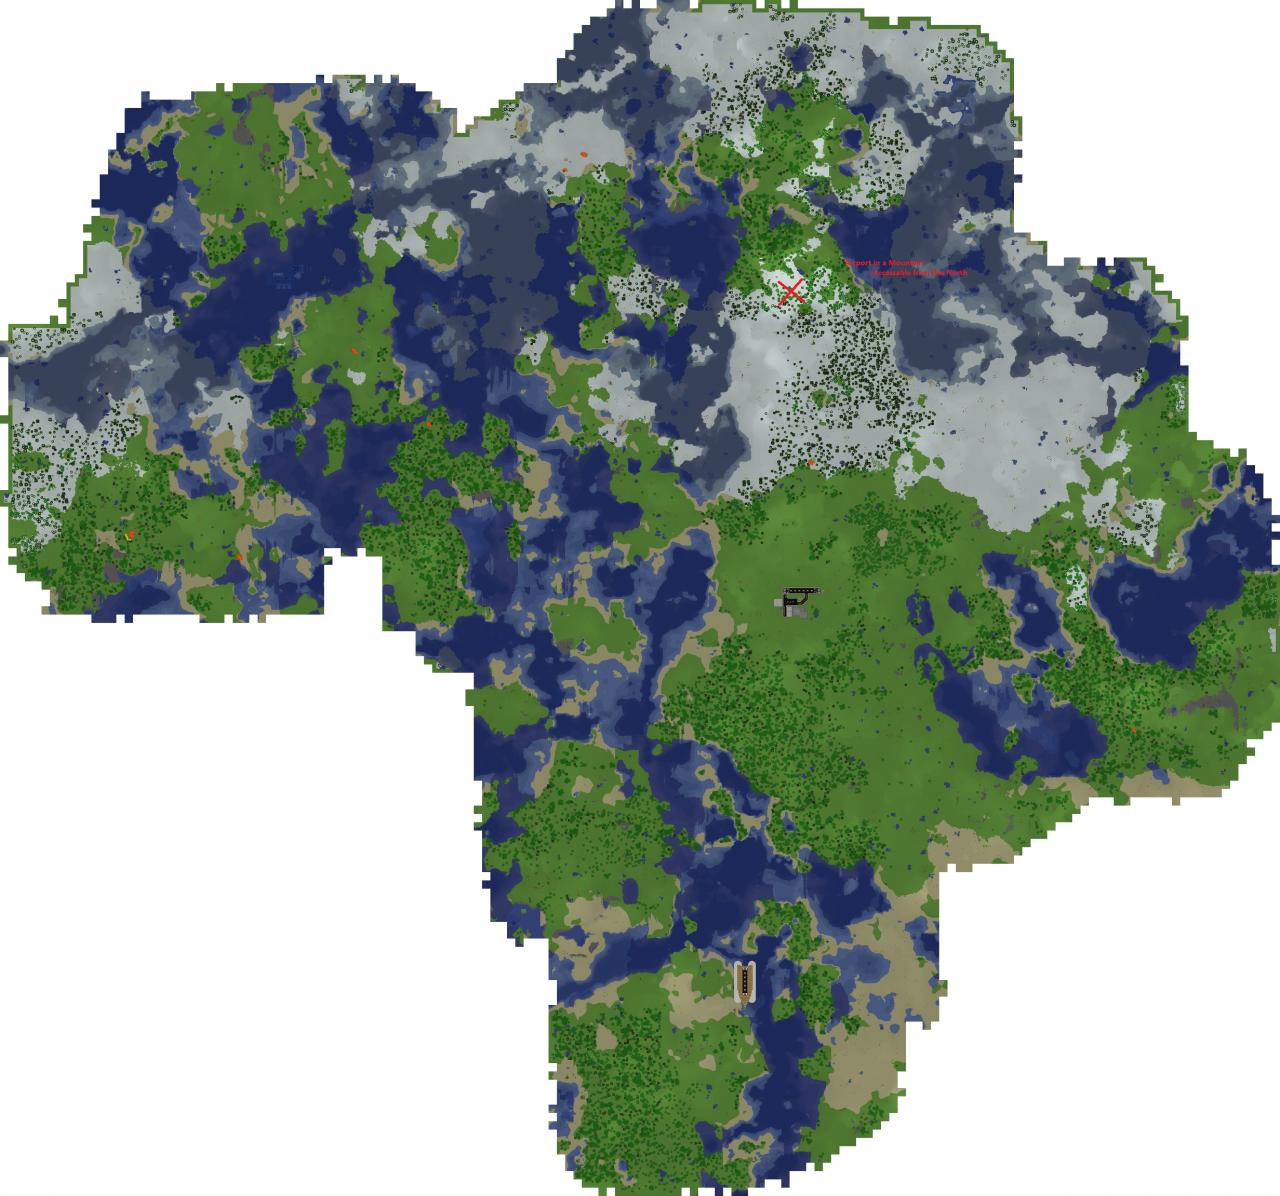 Minecraft world map mod afp cv gumiabroncs Image collections